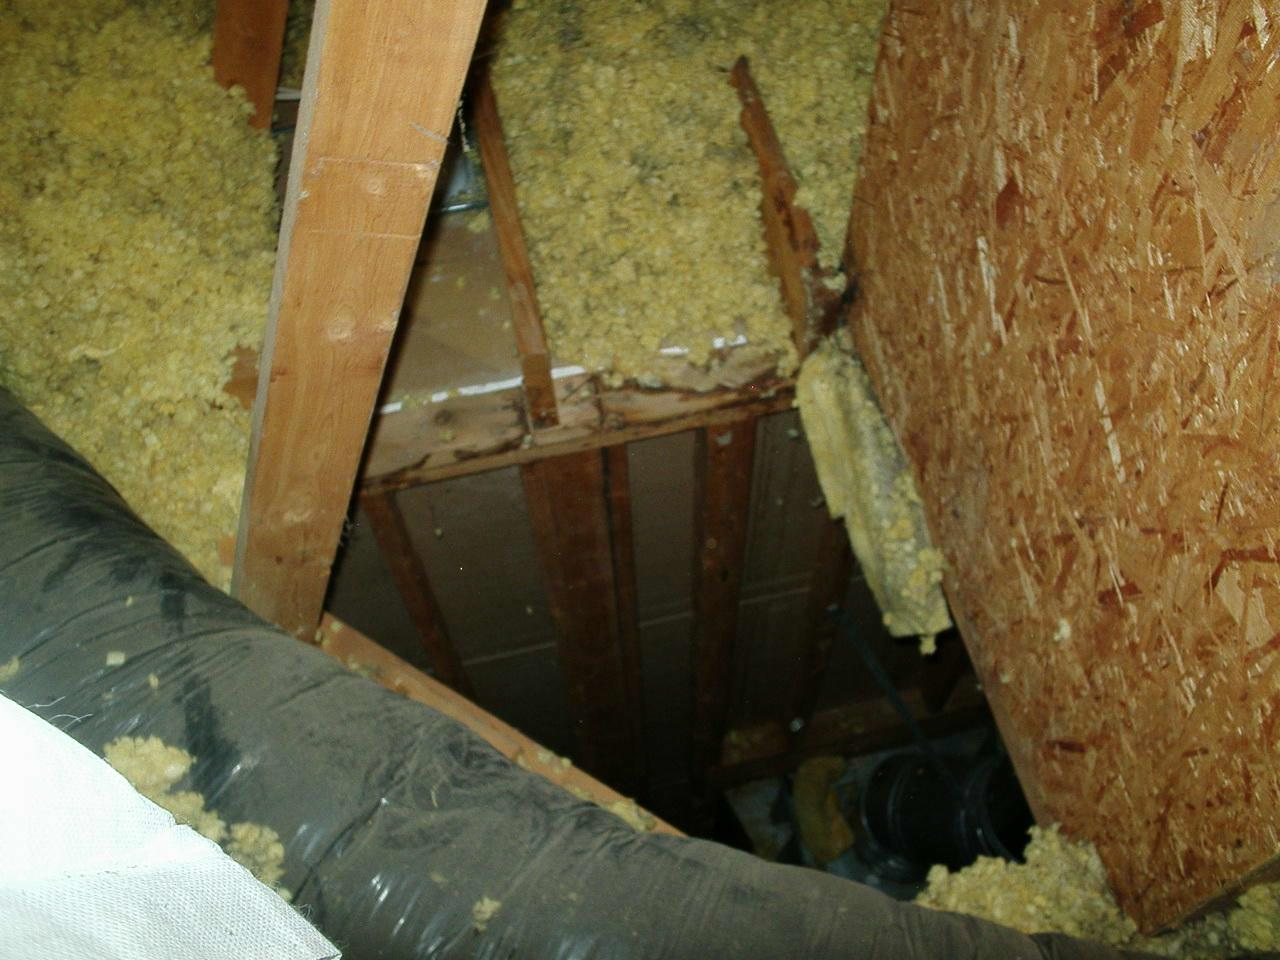 Sealing the Attic Leaks in Pittsboro, IN - Before Photo